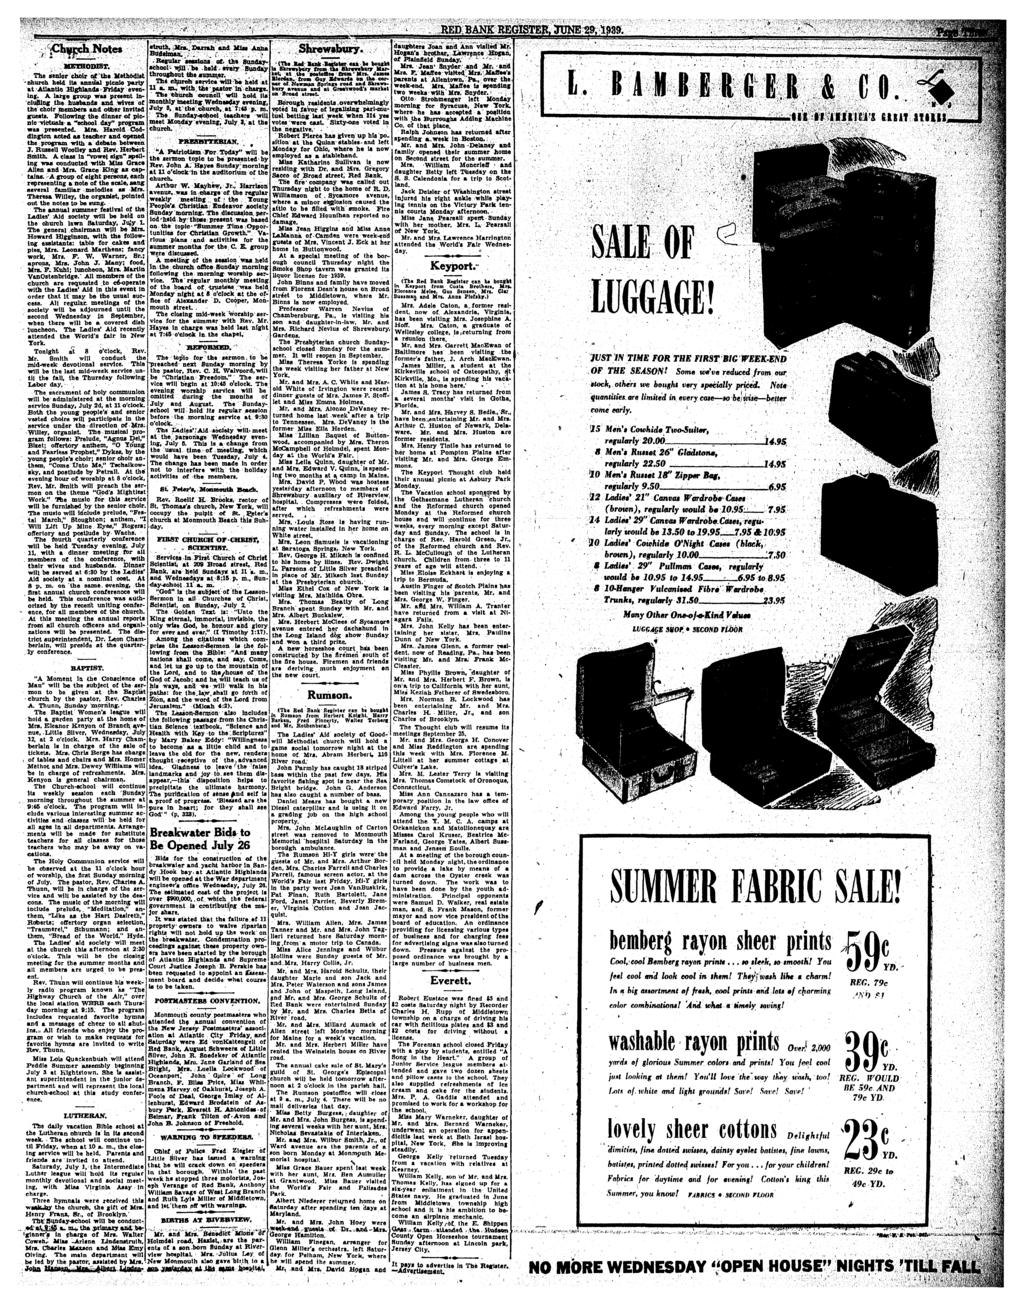 RED BANK REGISTER SECTION* - PDF